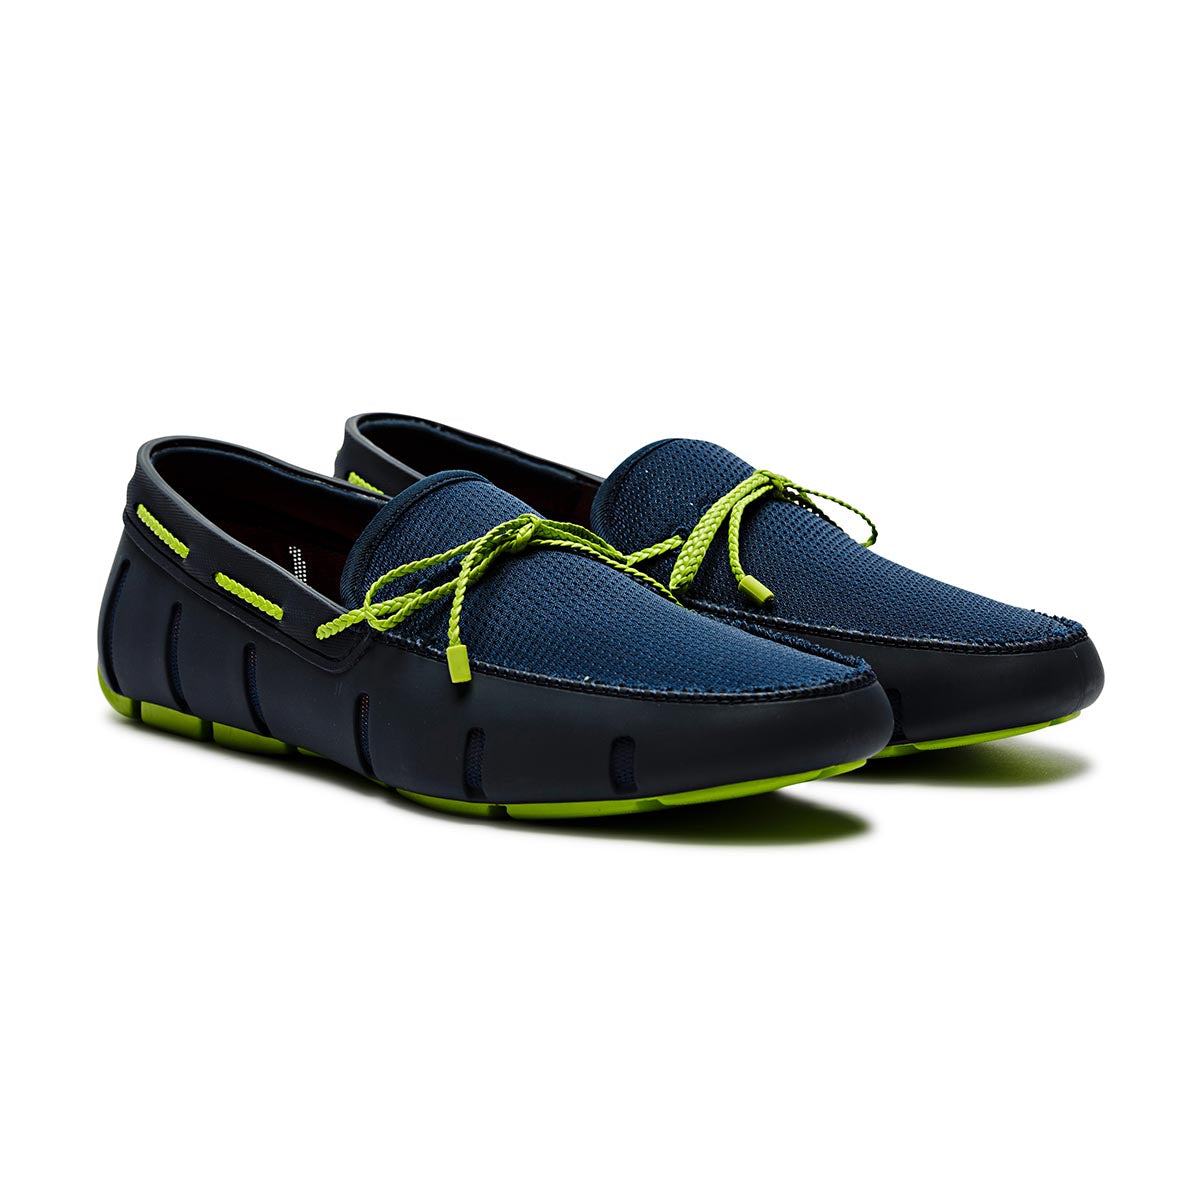 Braided Lace Loafer - background::white,variant::NAVY/GREEN